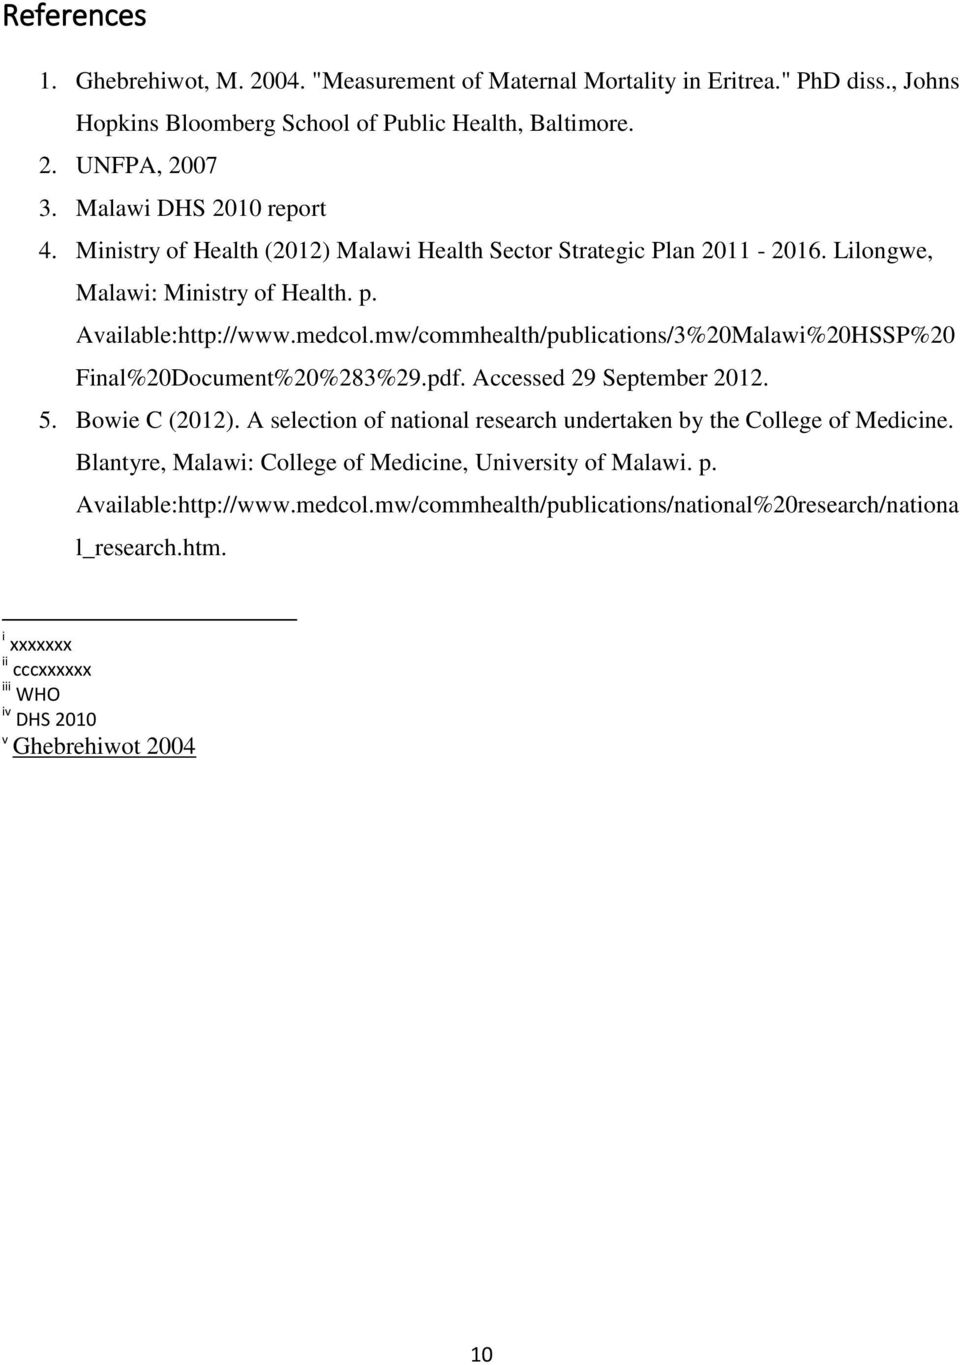 mw/commhealth/publications/3%20Malawi%20HSSP%20 Final%20Document%20%283%29.pdf. Accessed 29 September 2012. 5. Bowie C (2012).